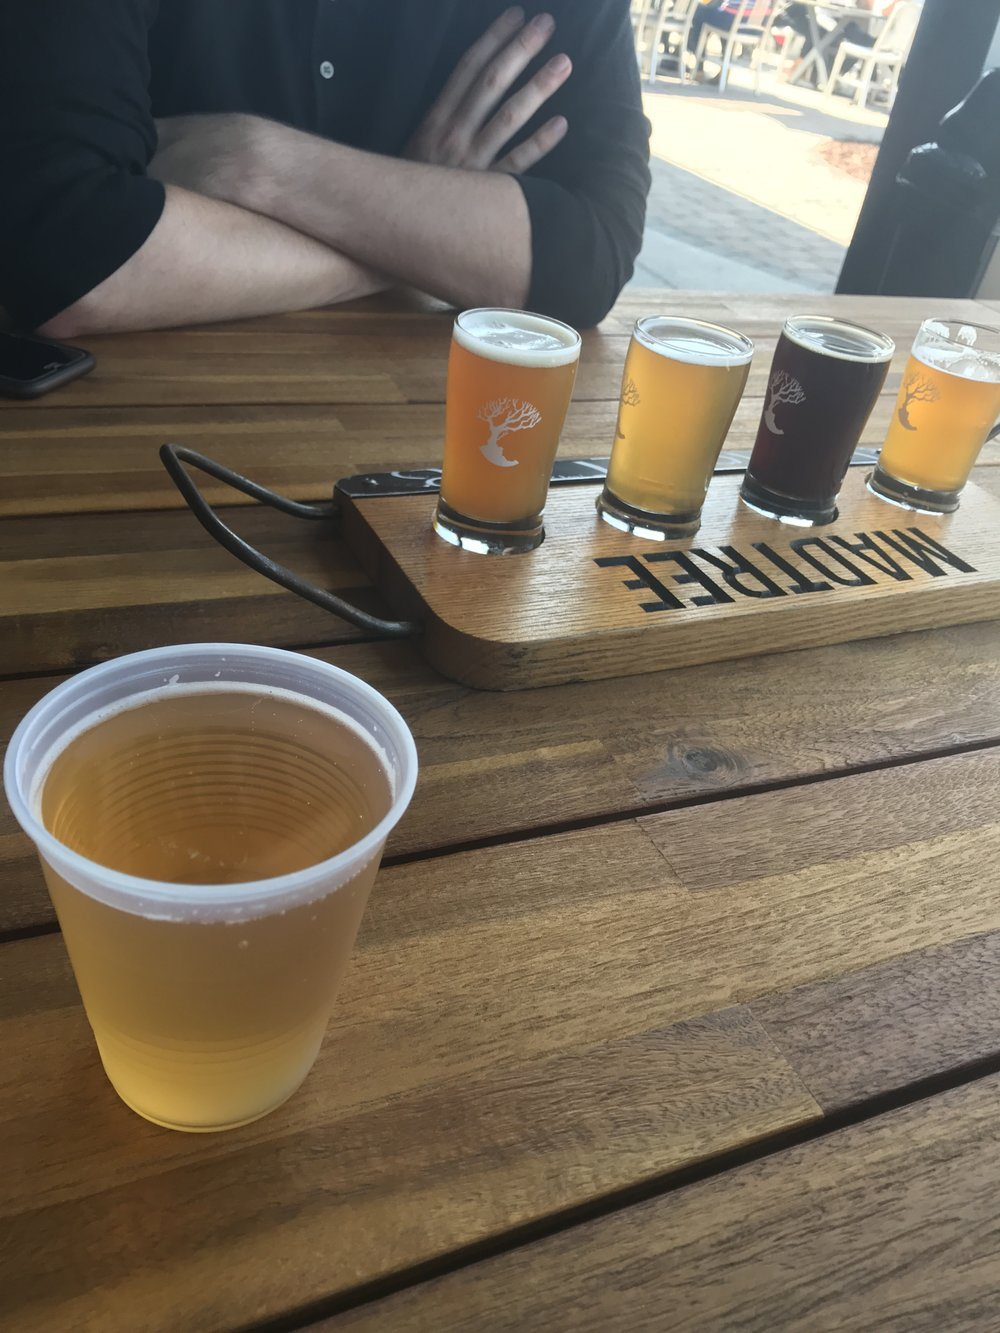 The boys shared an IPA flight as I sipped on my sneaky cider